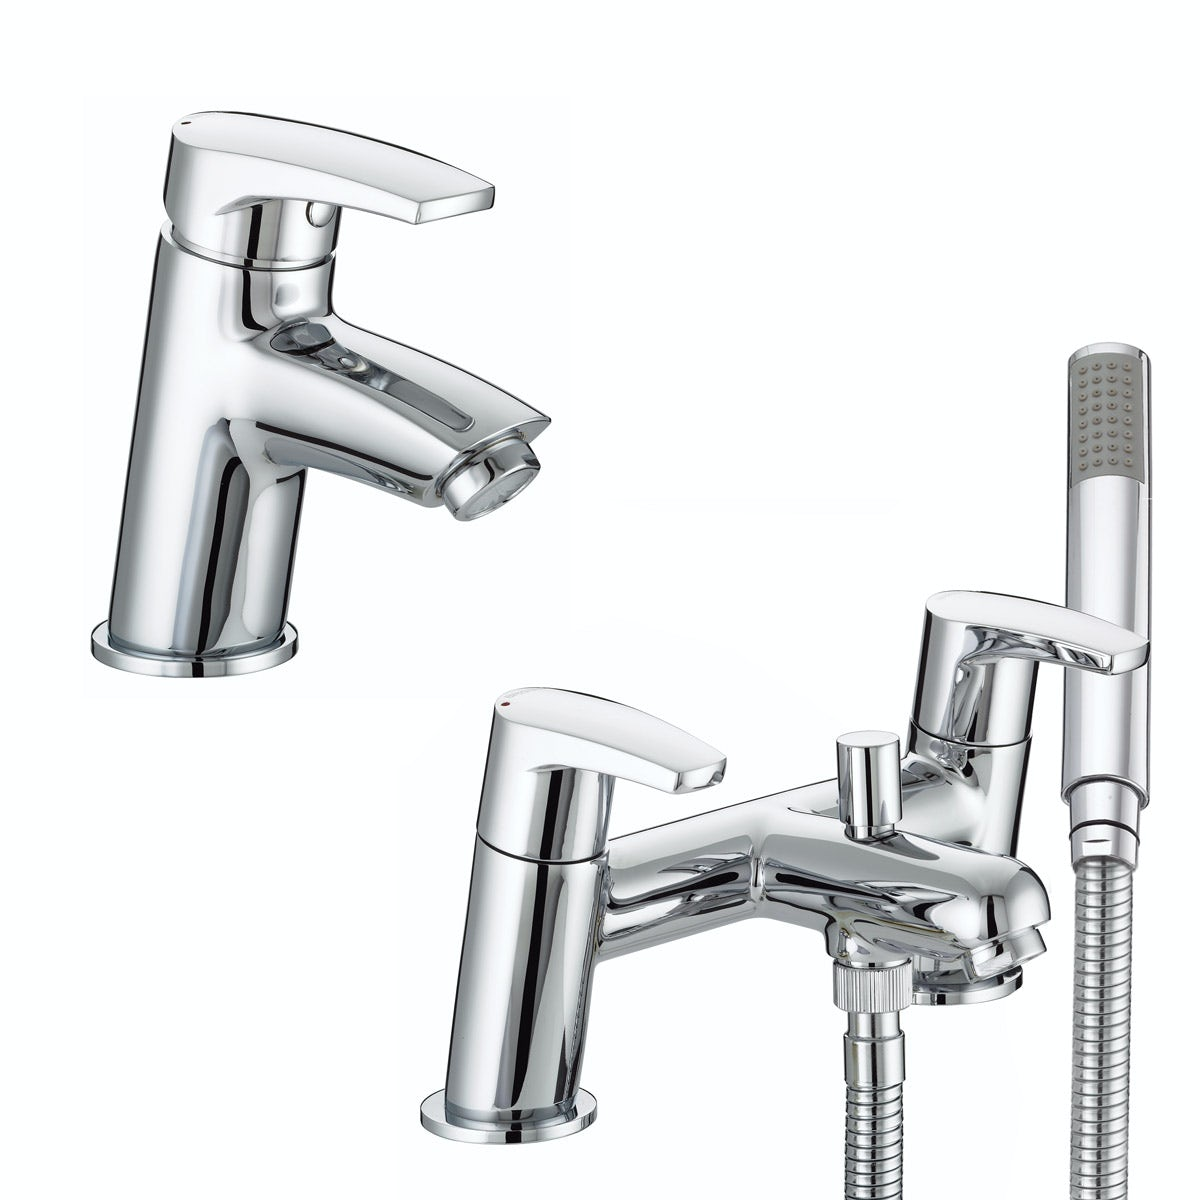 Bristan Orta basin and bath shower mixer tap pack